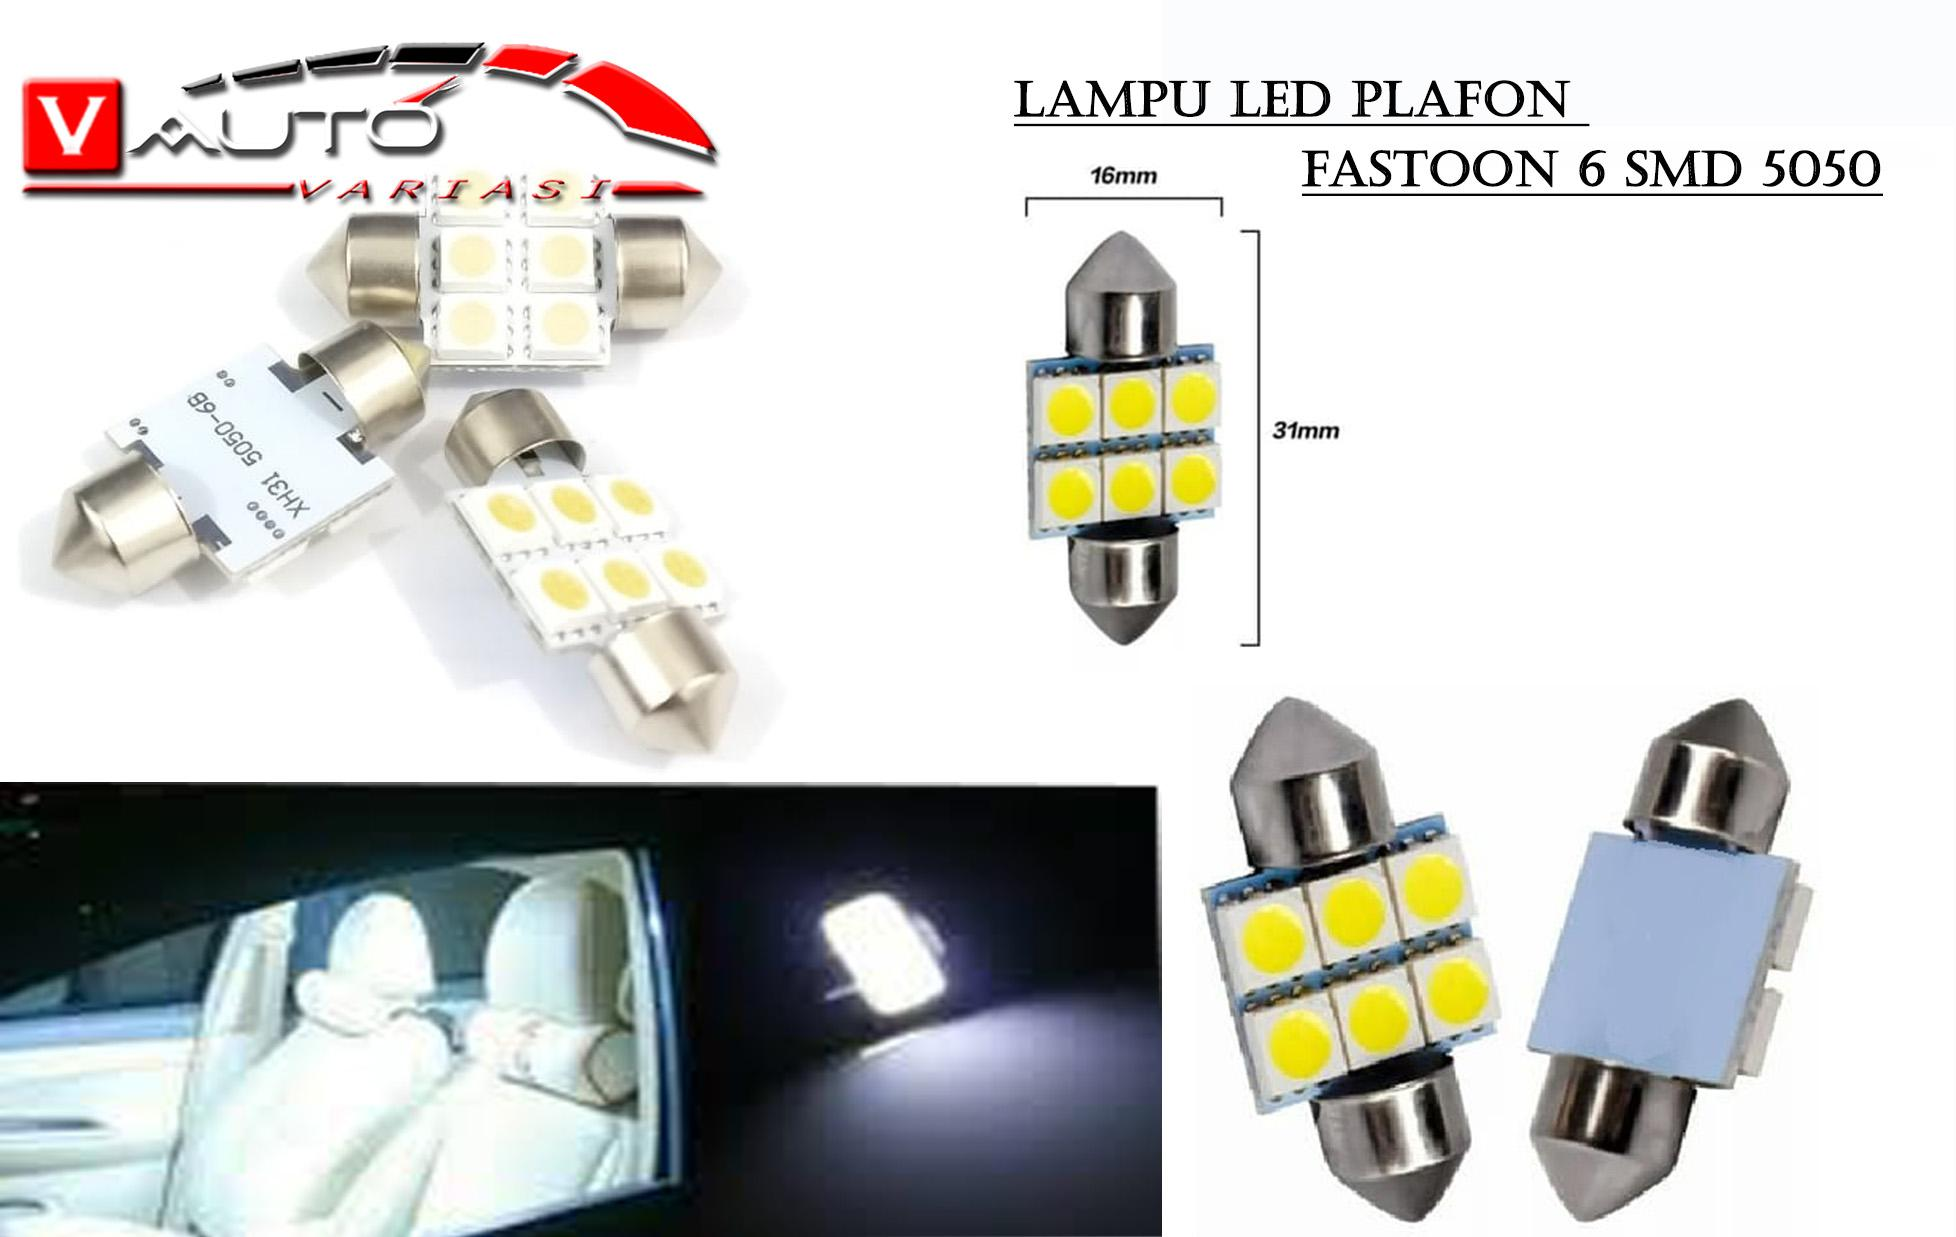 Lampu Led Plafon 6 Smd 5050 6 Titik Led Kabin Mobil Festoon 31 Mm By V Auto.